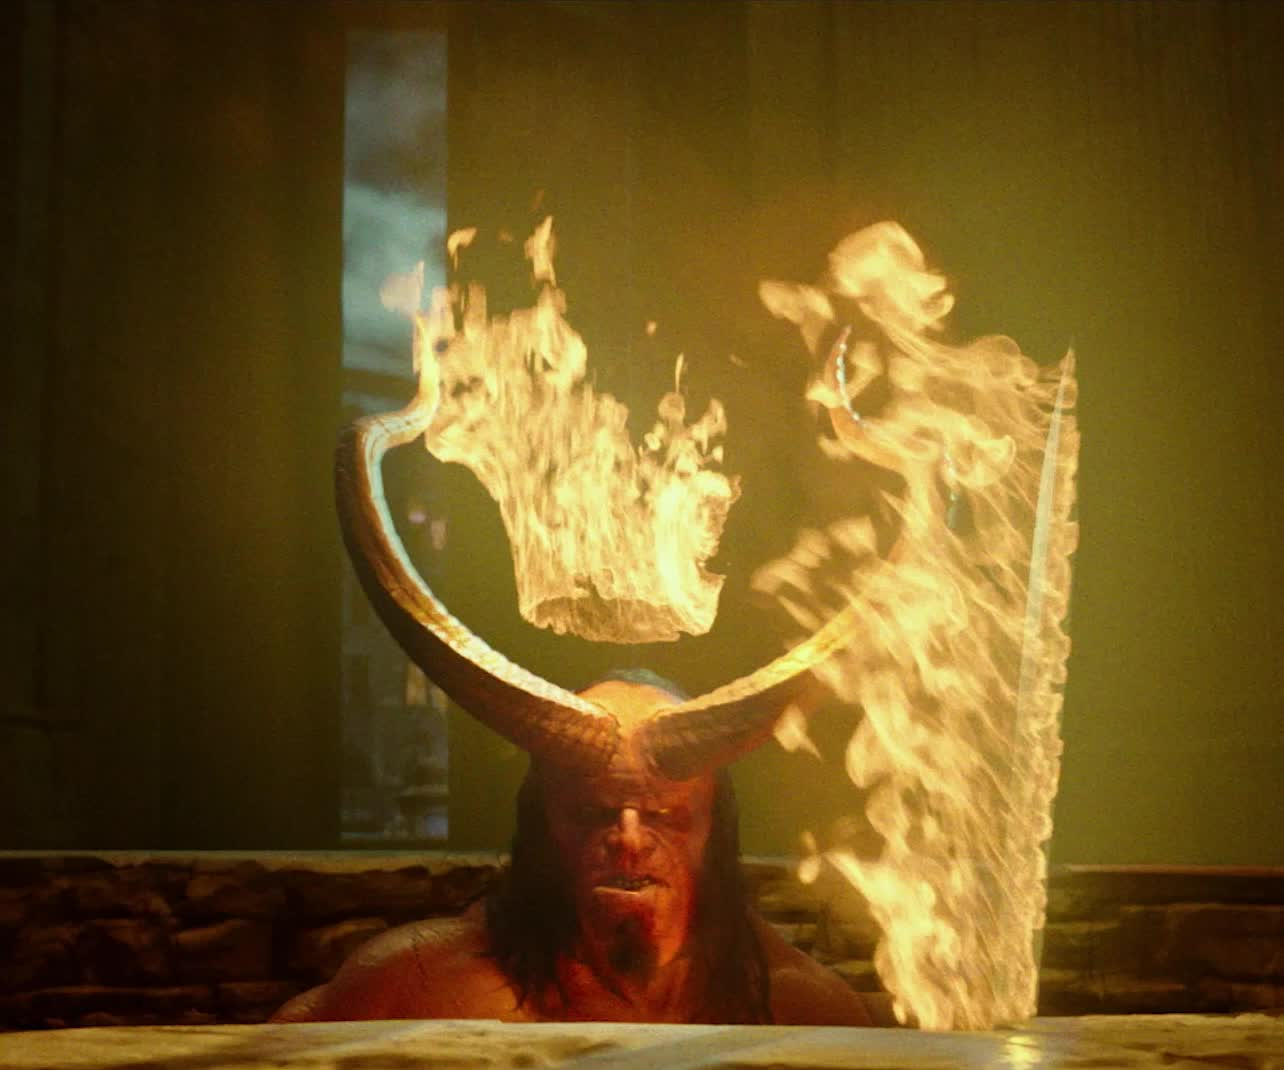 dark horse, dark horse comics, david harbour, fire, flames, hellboy, hellboy 2019, hellboy movie, its lit, lit, superhero, superheroes, Hellboy Emerging Flames GIFs